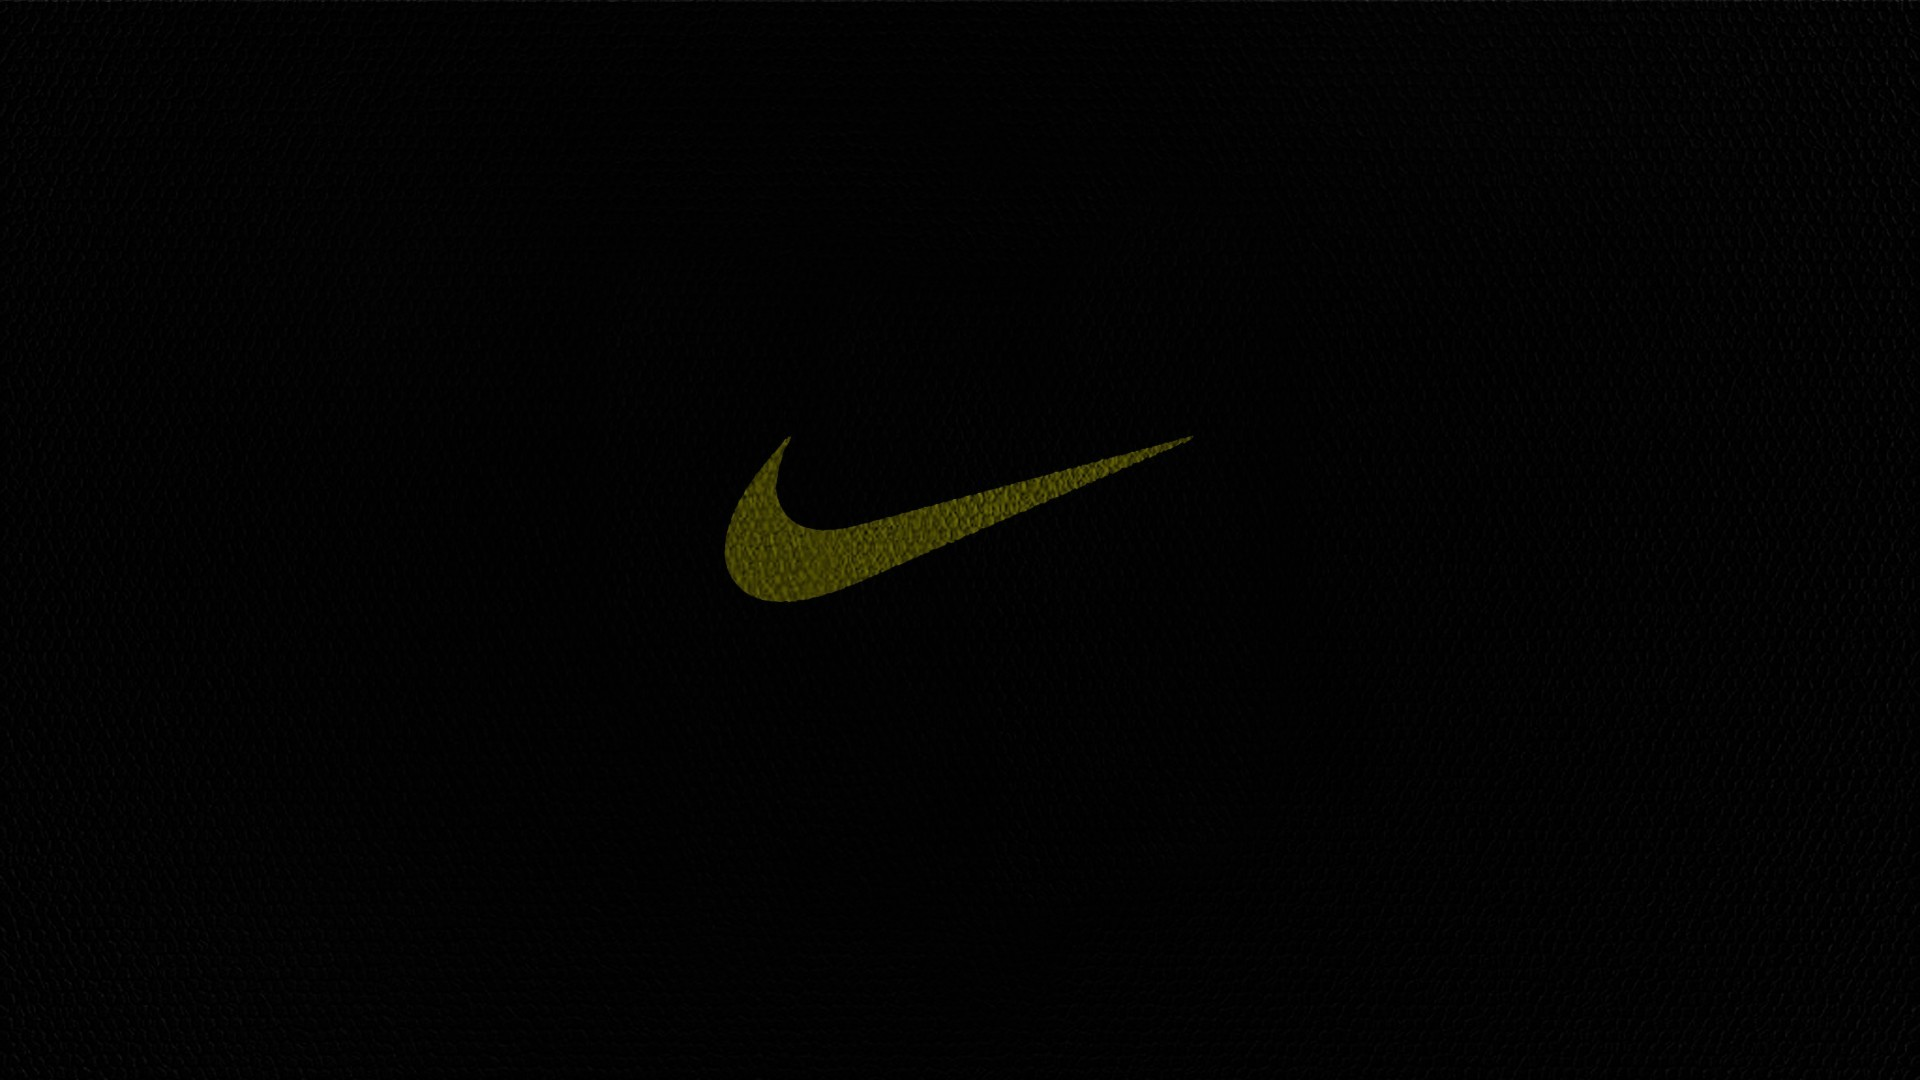 Iphone nike wallpaper hd 78 images 1920x1080 nike flow by antidesigns on deviantart desktop wallpaper cool nike voltagebd Gallery